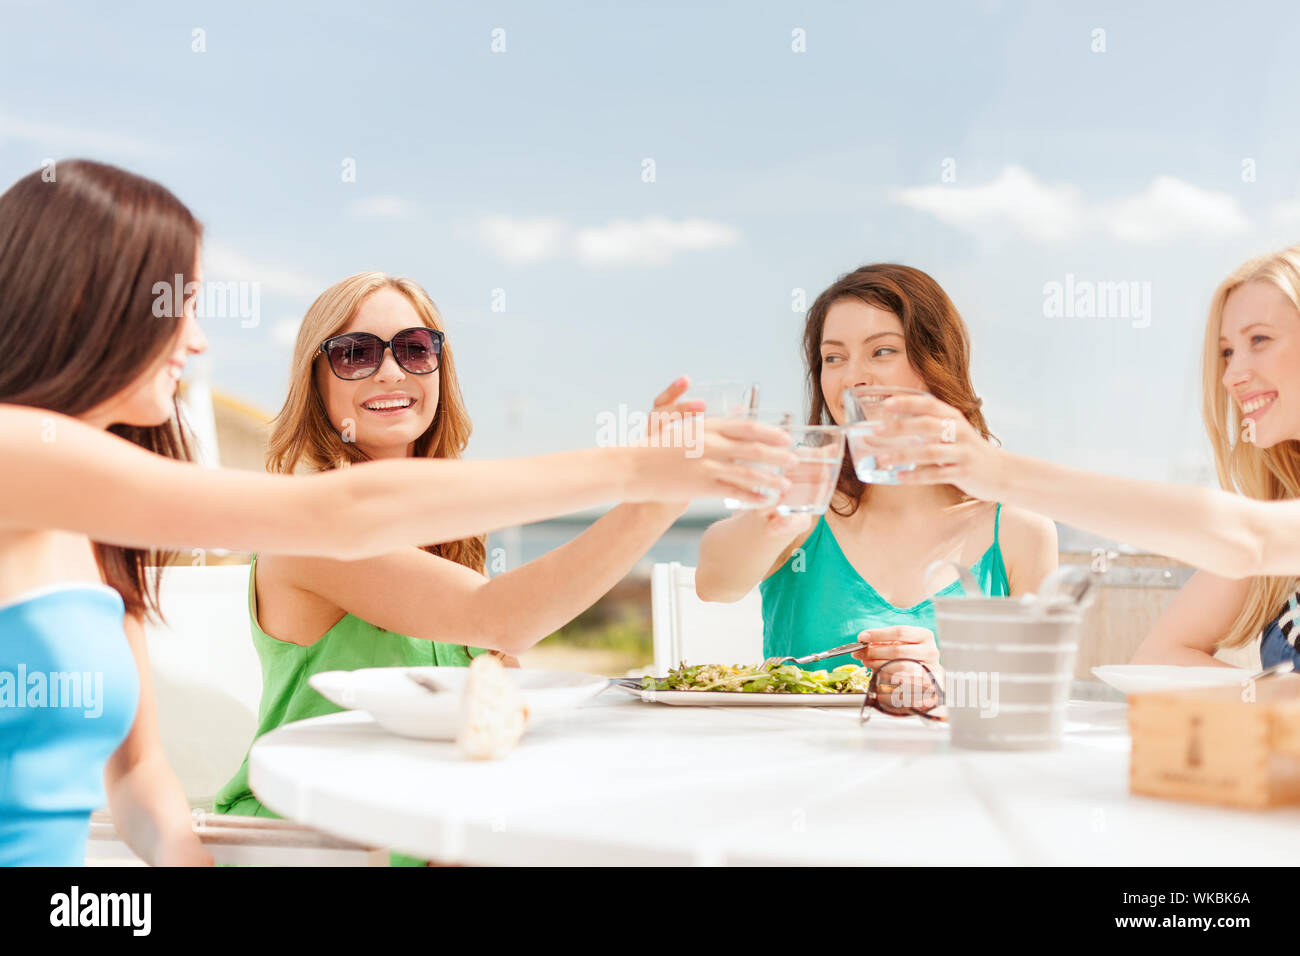 Summer Holidays And Vacation Concept Girls Making A Toast